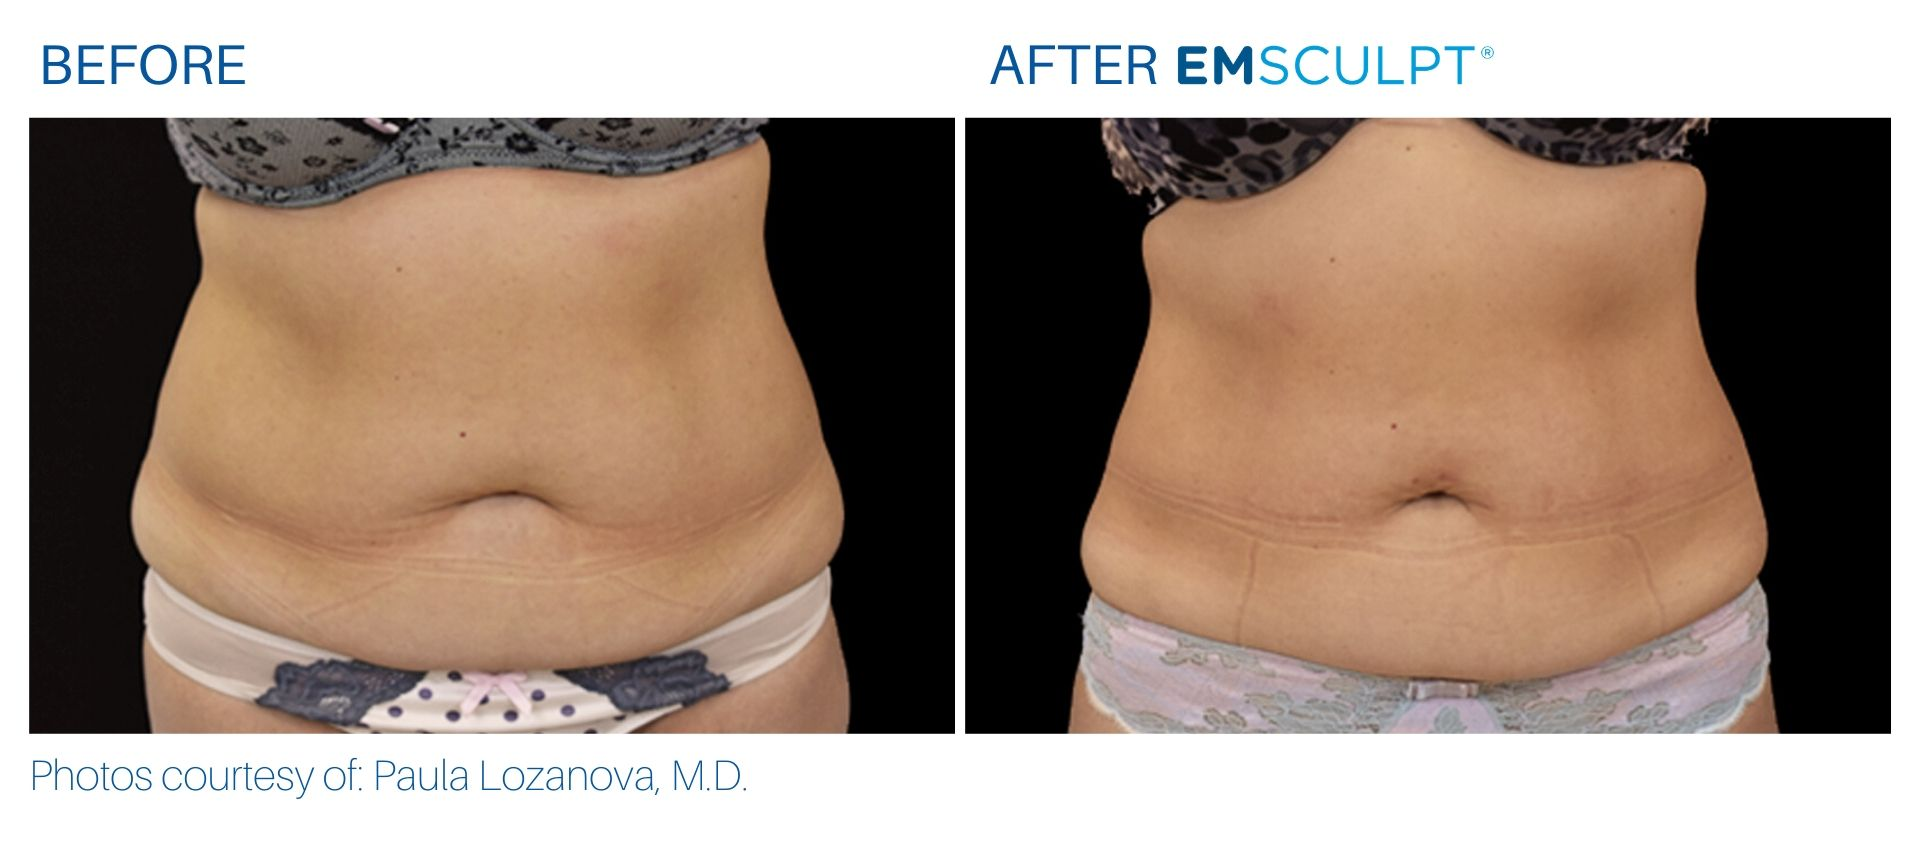 Emsculpt treatment before and after result in Robbinsville, NJ